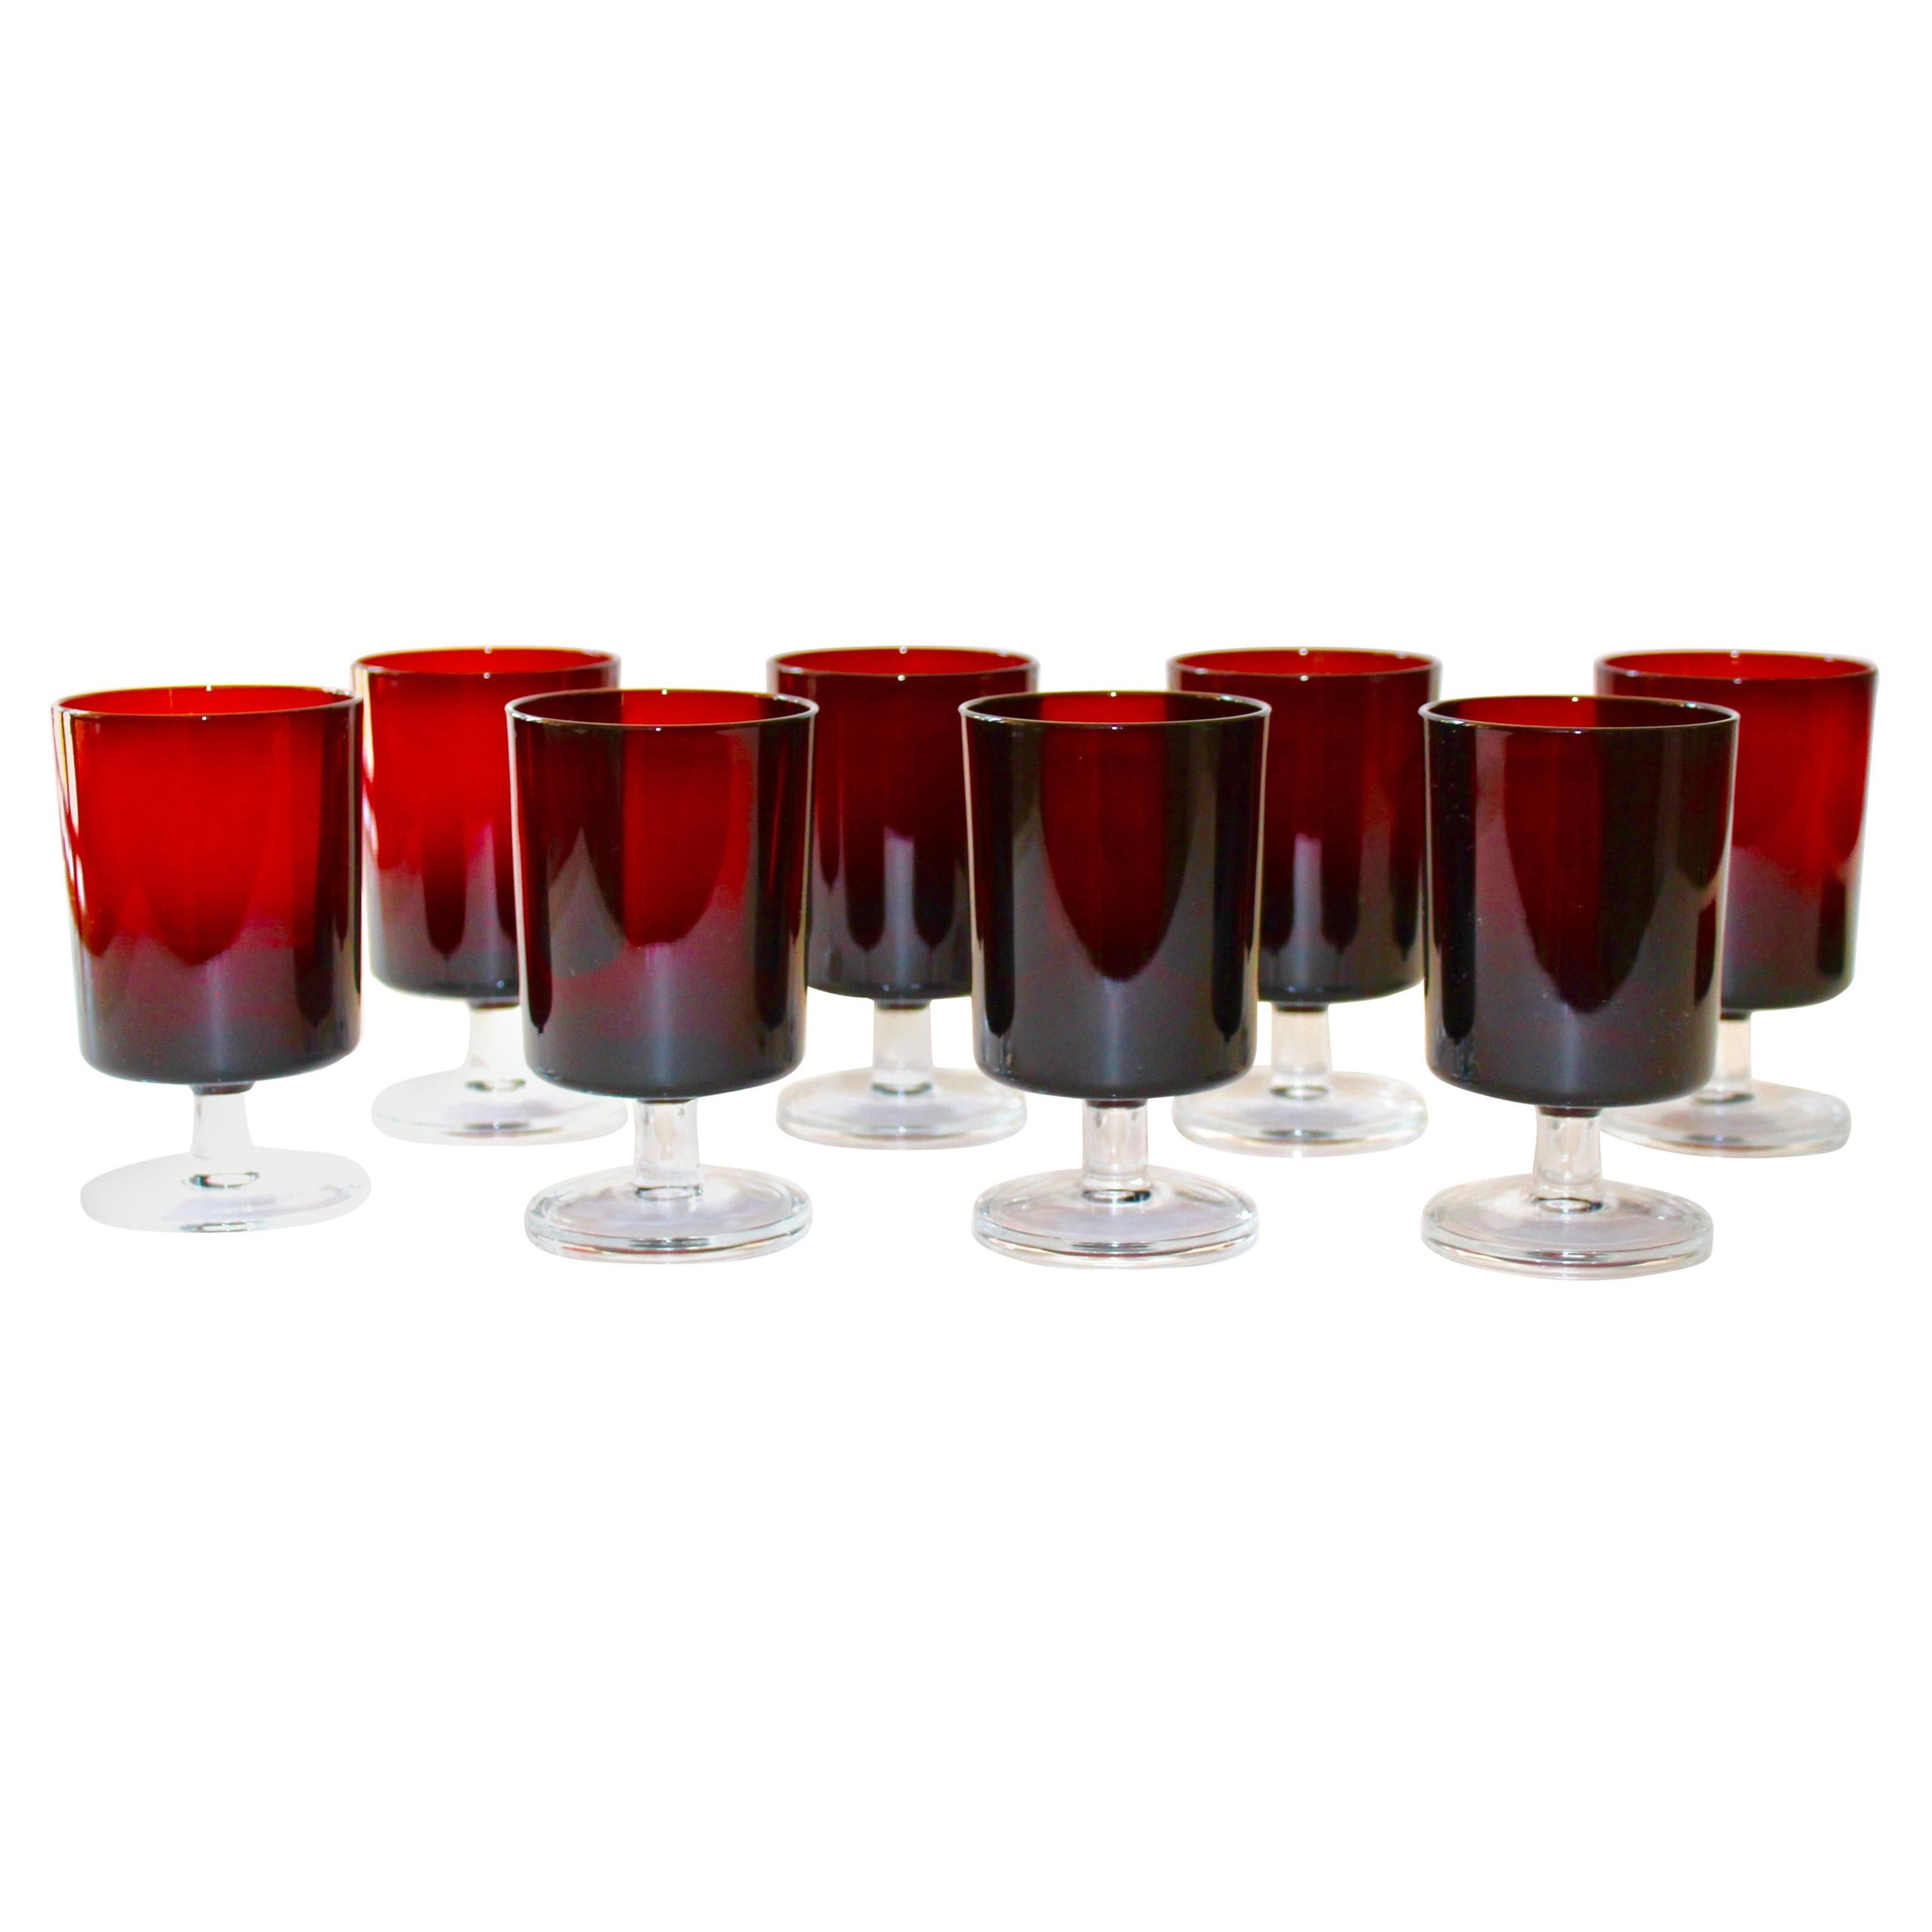 French Vintage Stemware Glasses in Ruby Red, Set of Eight, c. 1960s